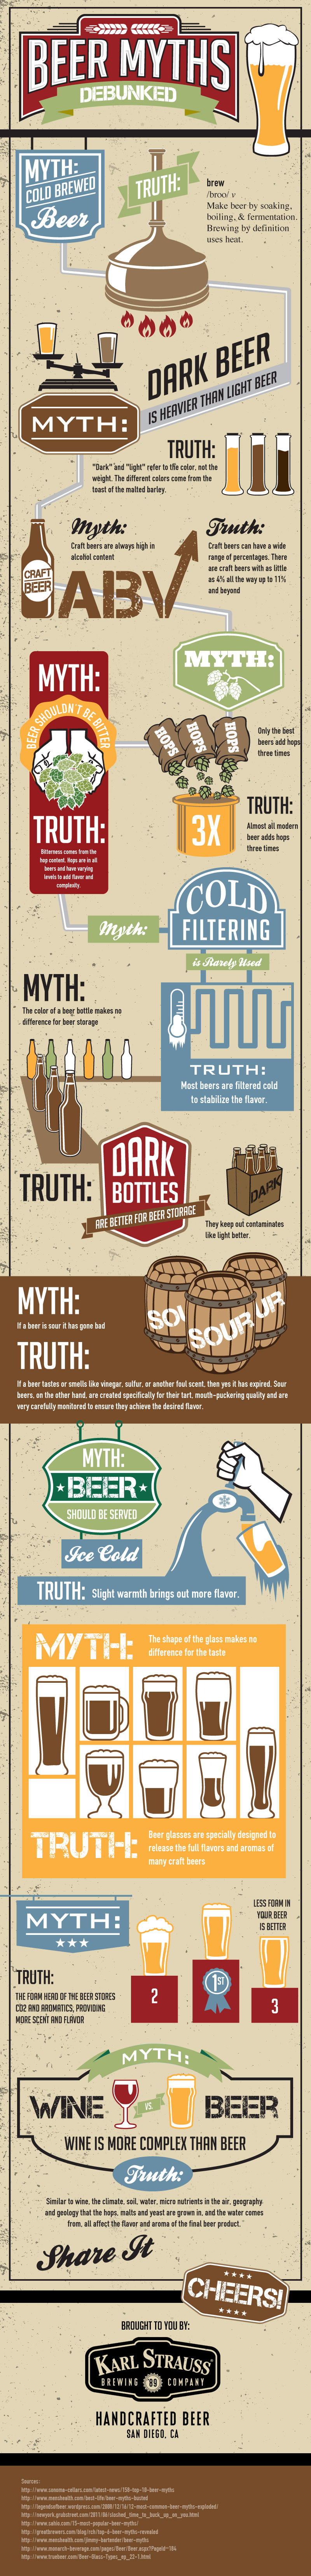 Beer Myths Fact or Fiction